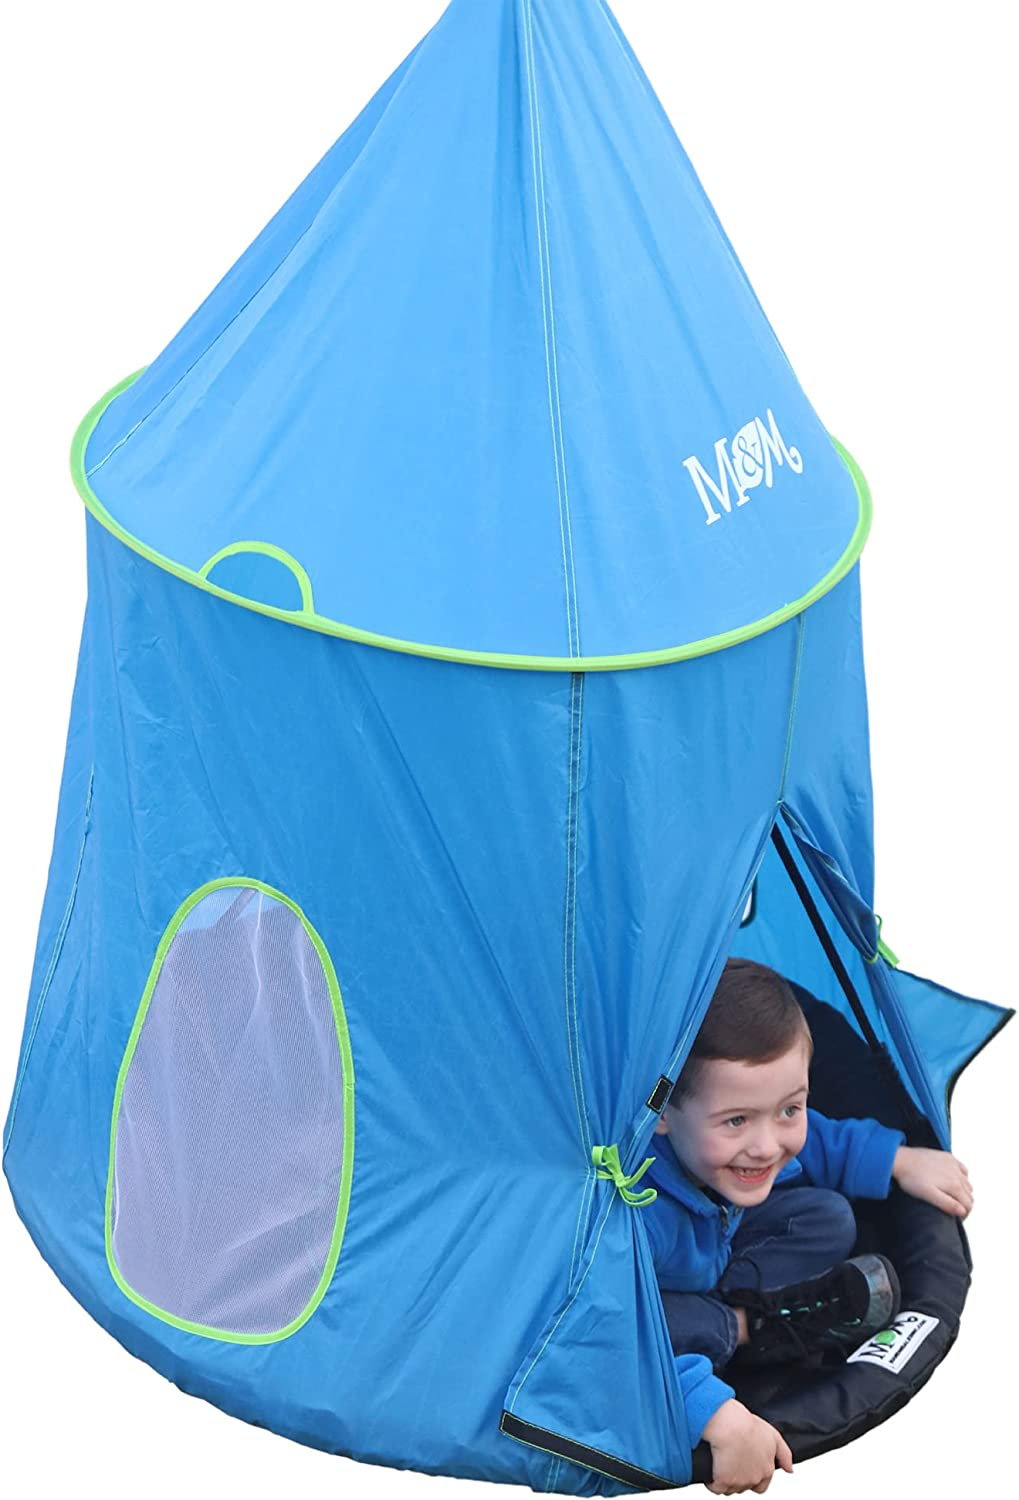 Turn Any 39in Round Swing into a 360-Degree Enclosed Floating Outdoor Fun Center Hangs Two Ways Portholes for ventilation Split Curtain Entry Big Top Tent Swing Accessory Quick to Attach//Detach